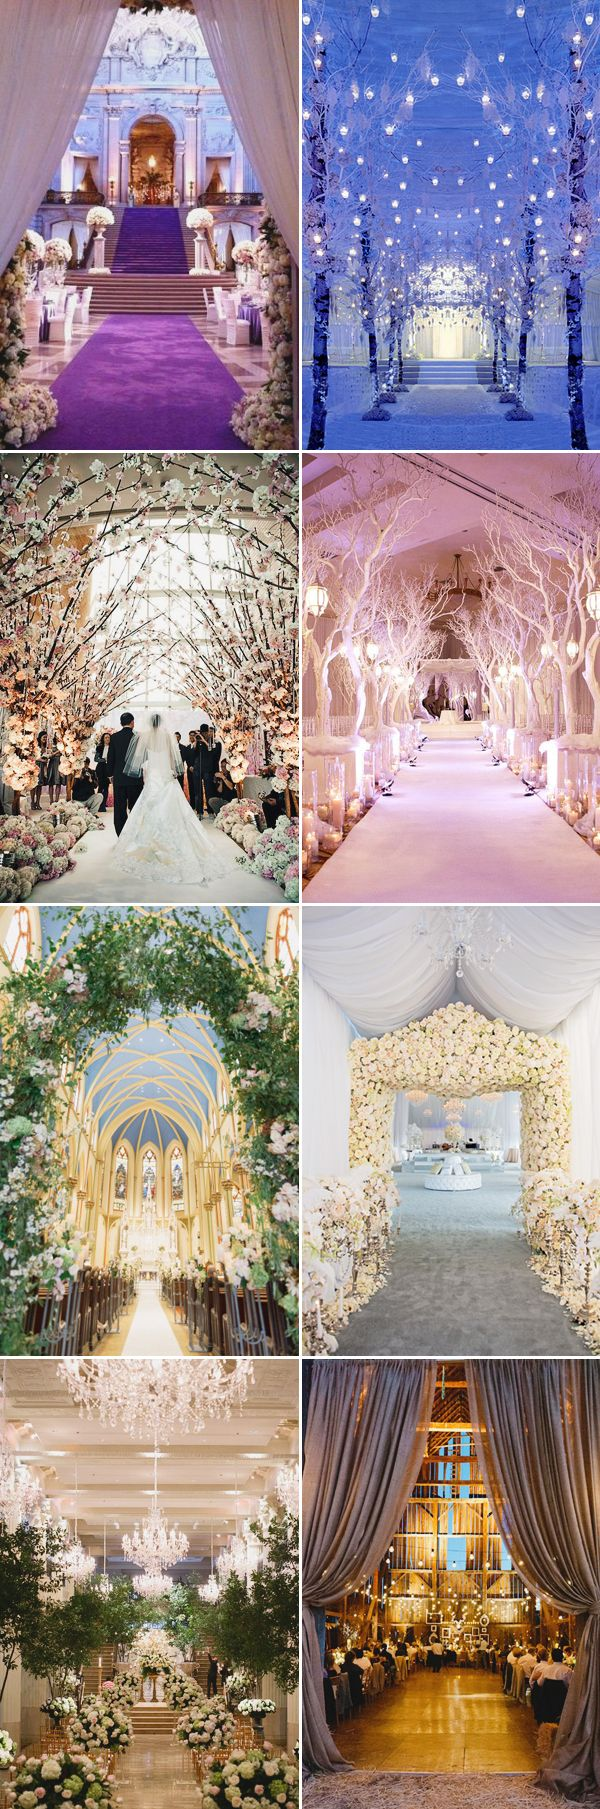 Making a Beautiful Entrance! 26 Creative Wedding Entrance Decor Ideas!